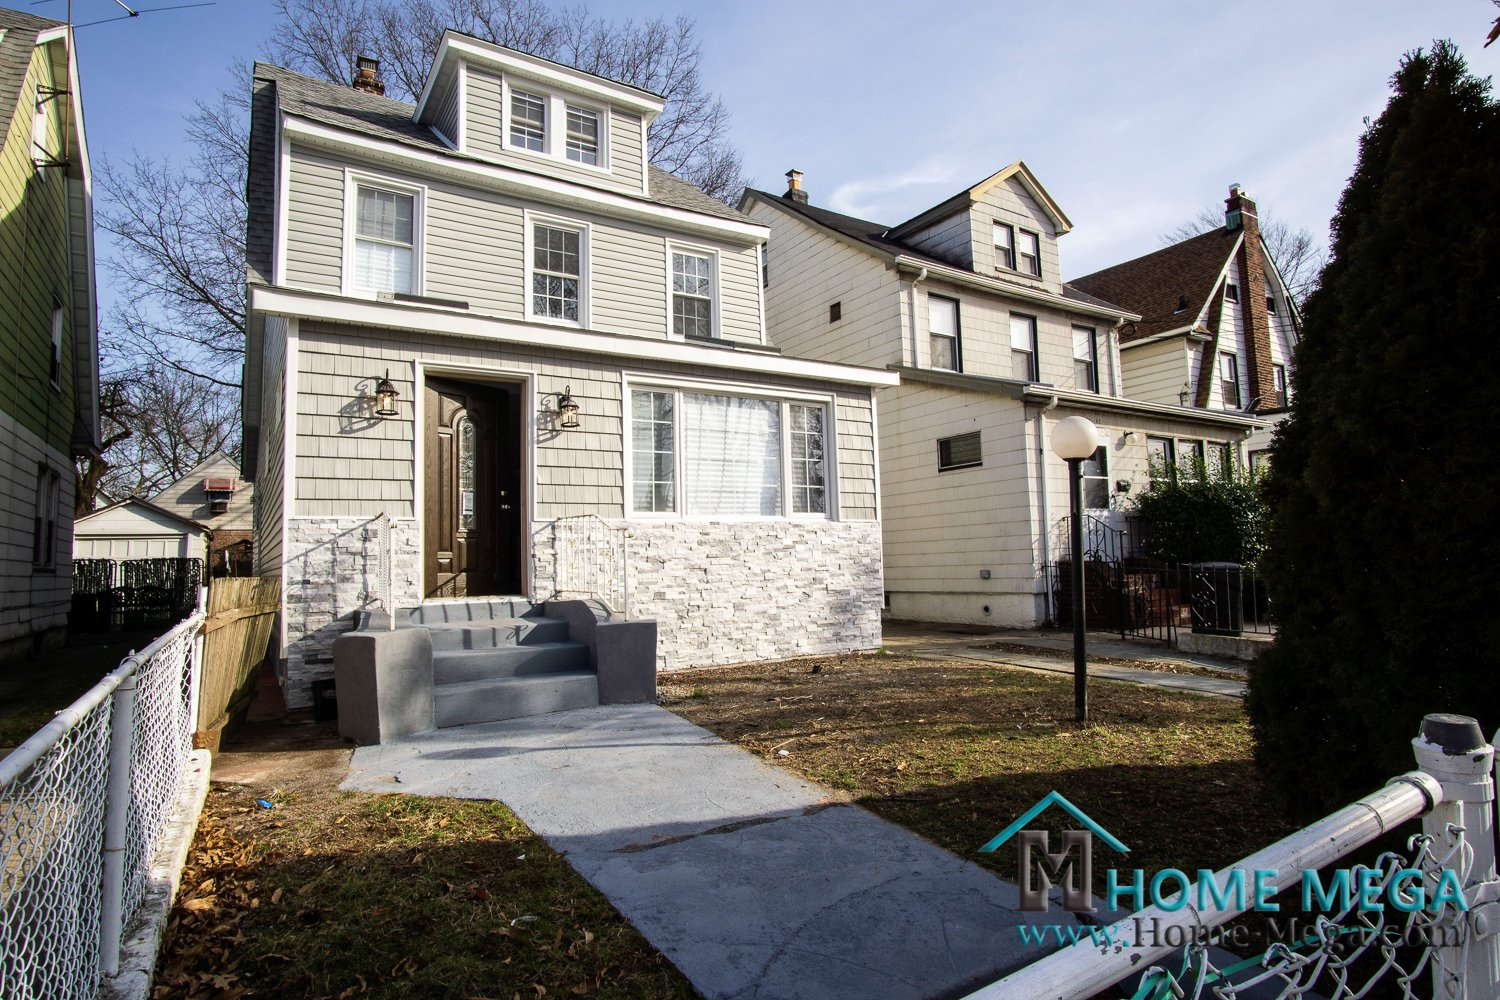 One Family Home For Sale In Saint Albans, Queens NY 11412. Artfully Remodeled Large One Family Home!